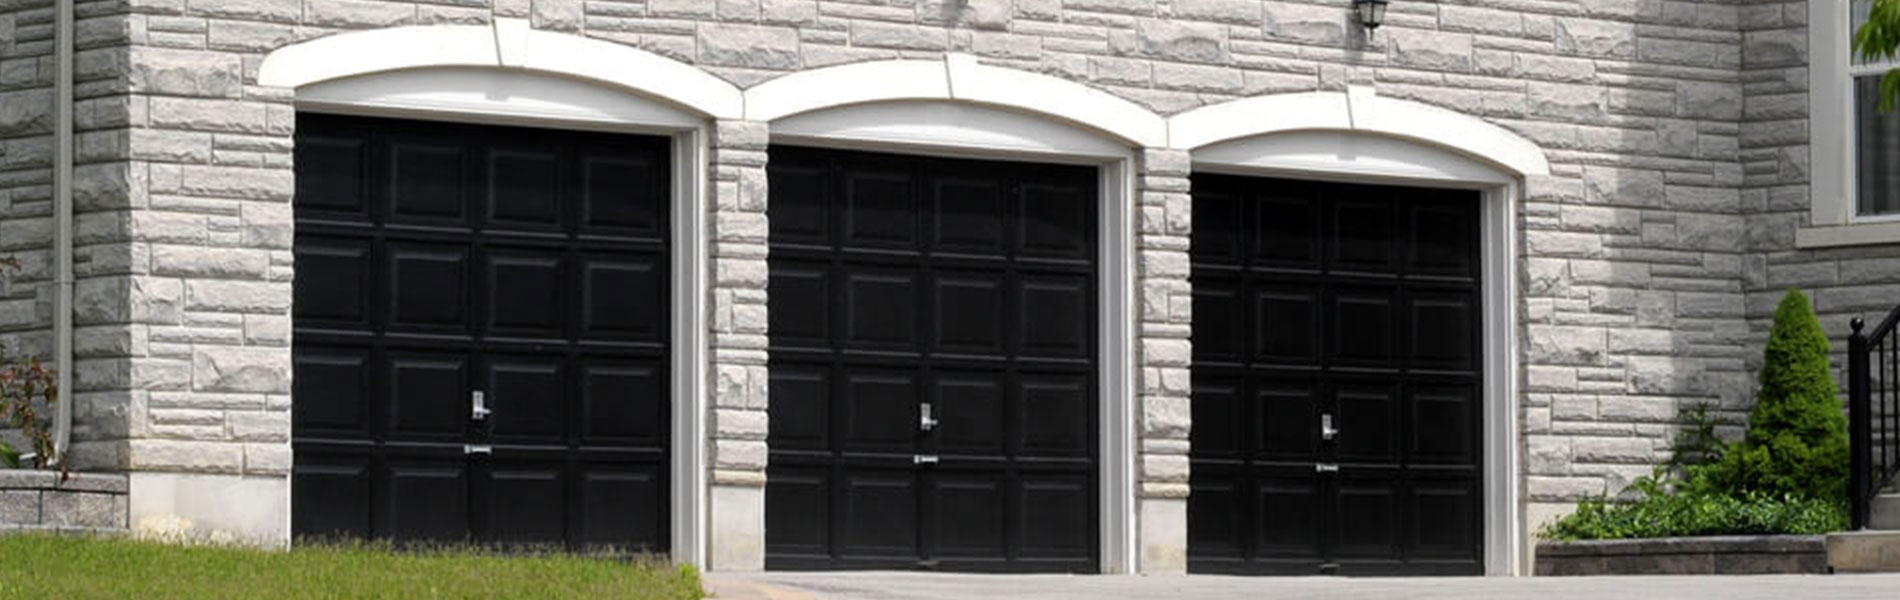 Neighborhood garage door service garage door roller for Ann arbor garage door repair